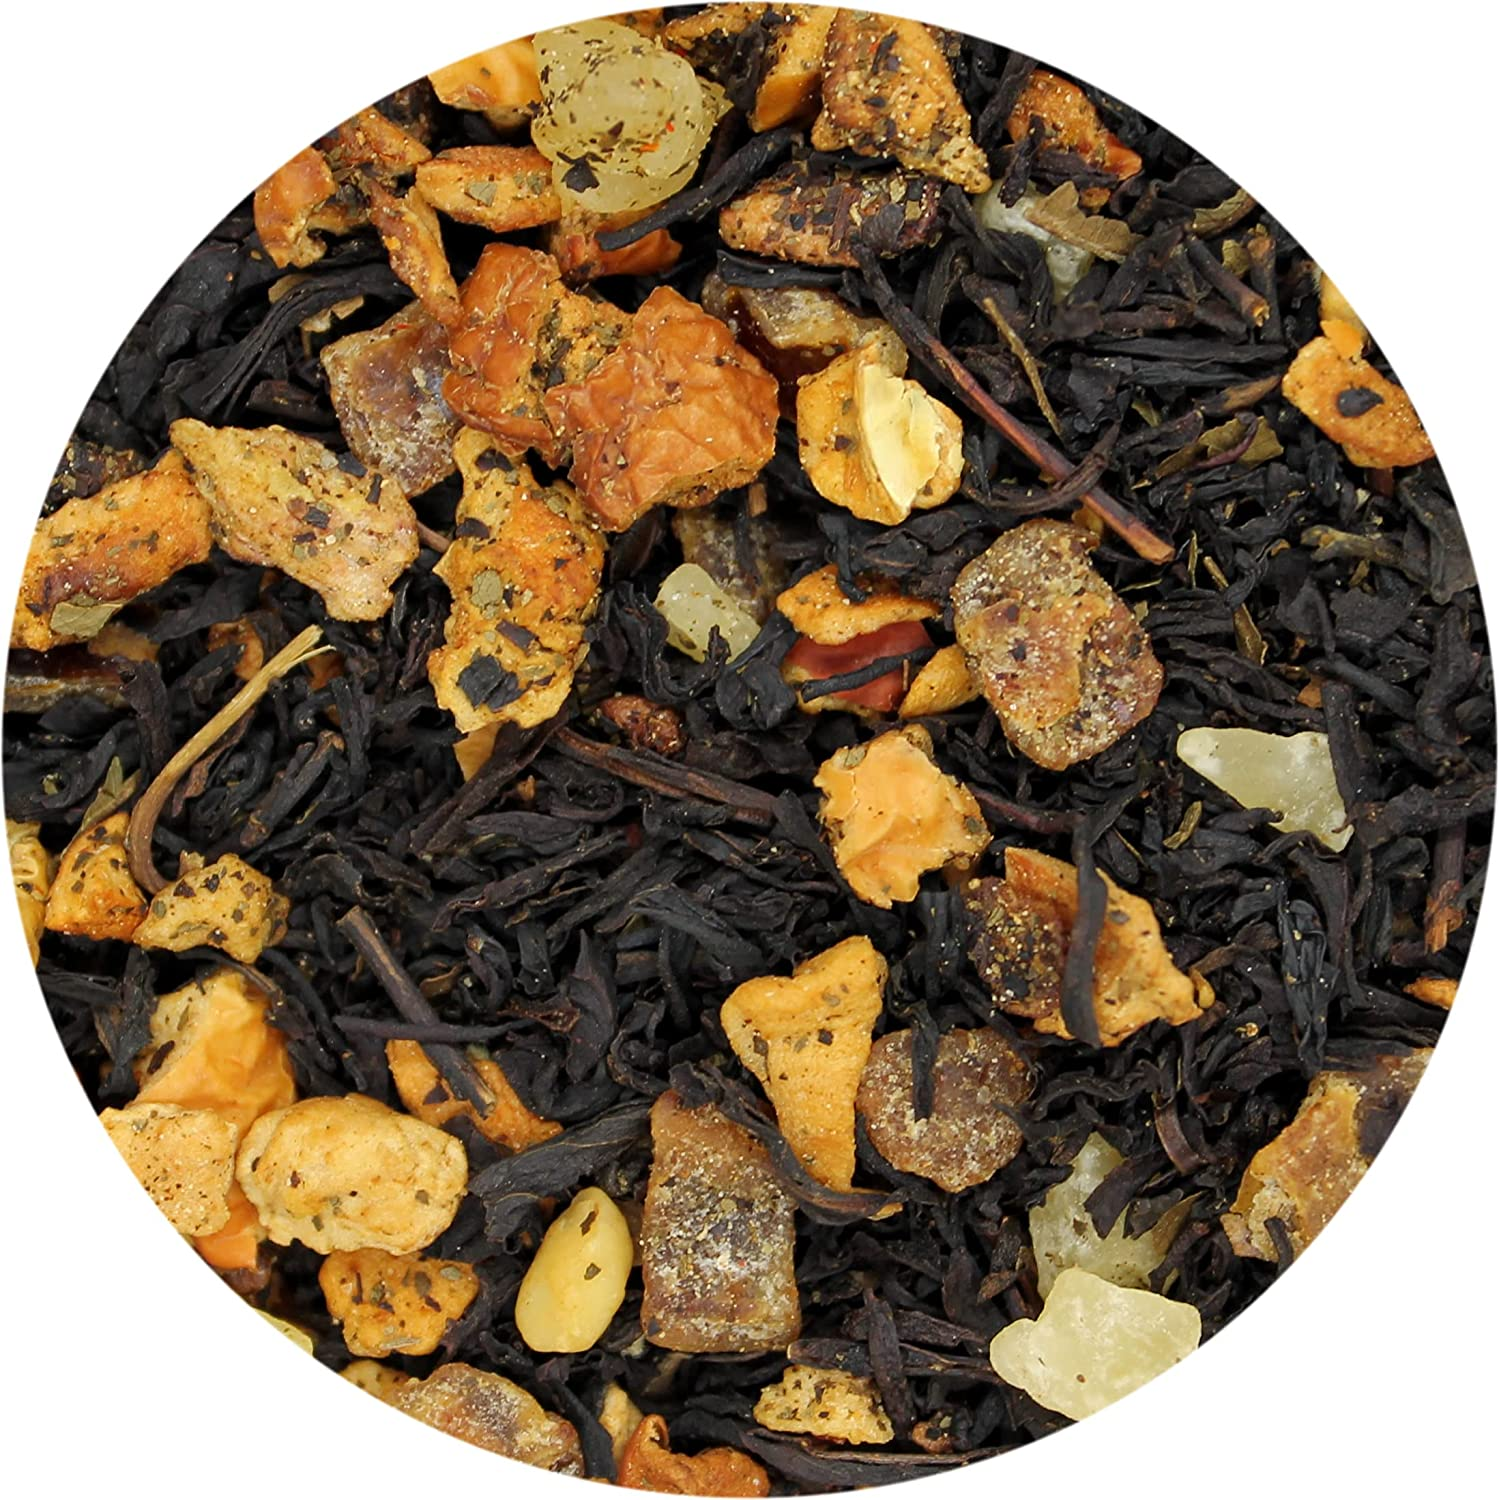 SpecialTea Company Walnut Cake with Limited price sale Figs Black Tea Reservation Loos 16 oz. -